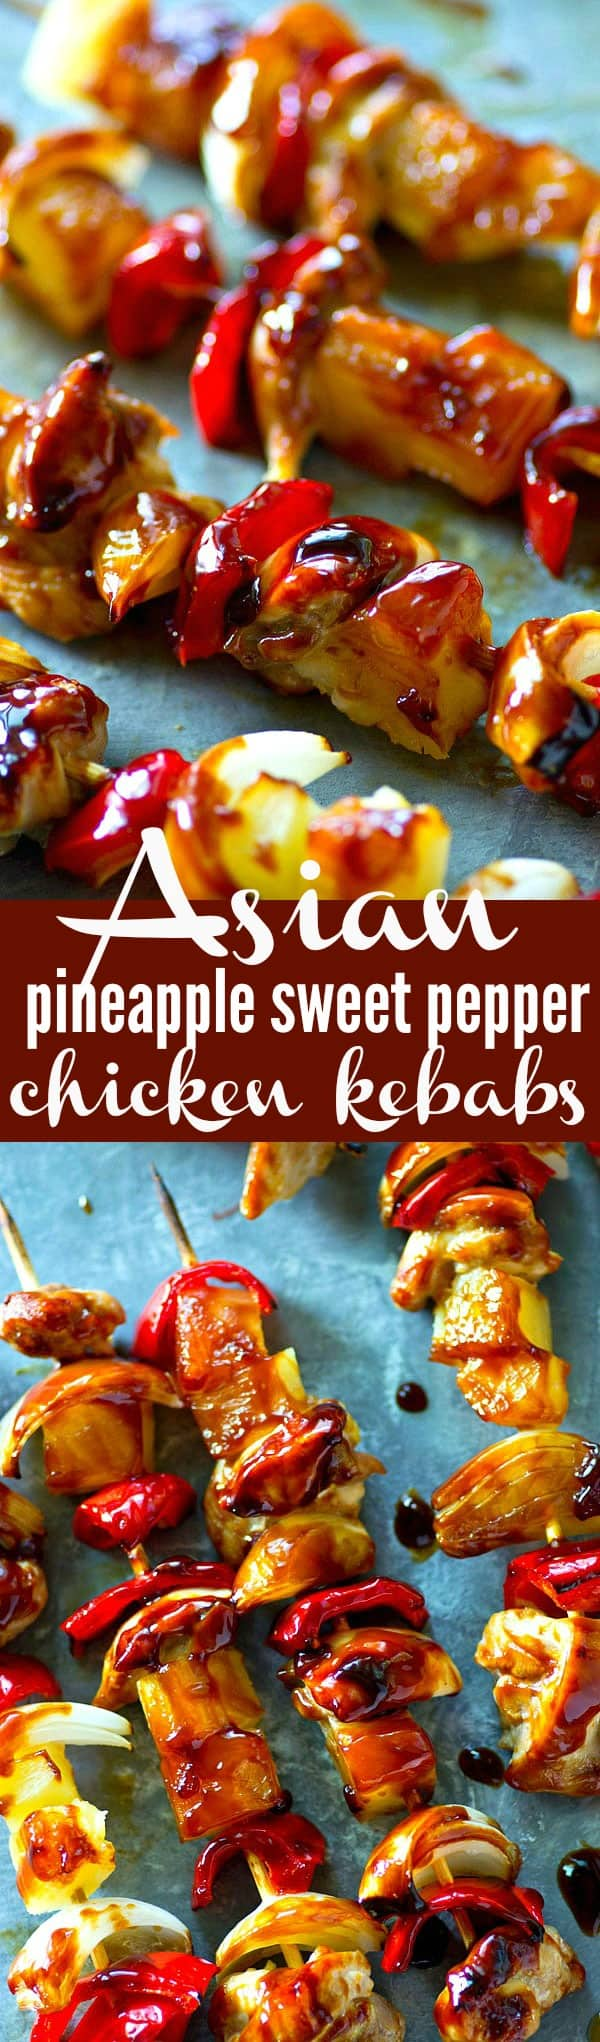 These pineapple sweet pepper chicken kebabs are the ultimate kebab to throw on the grill! A homemade Asian sauce brushed on top makes them burst with flavor.